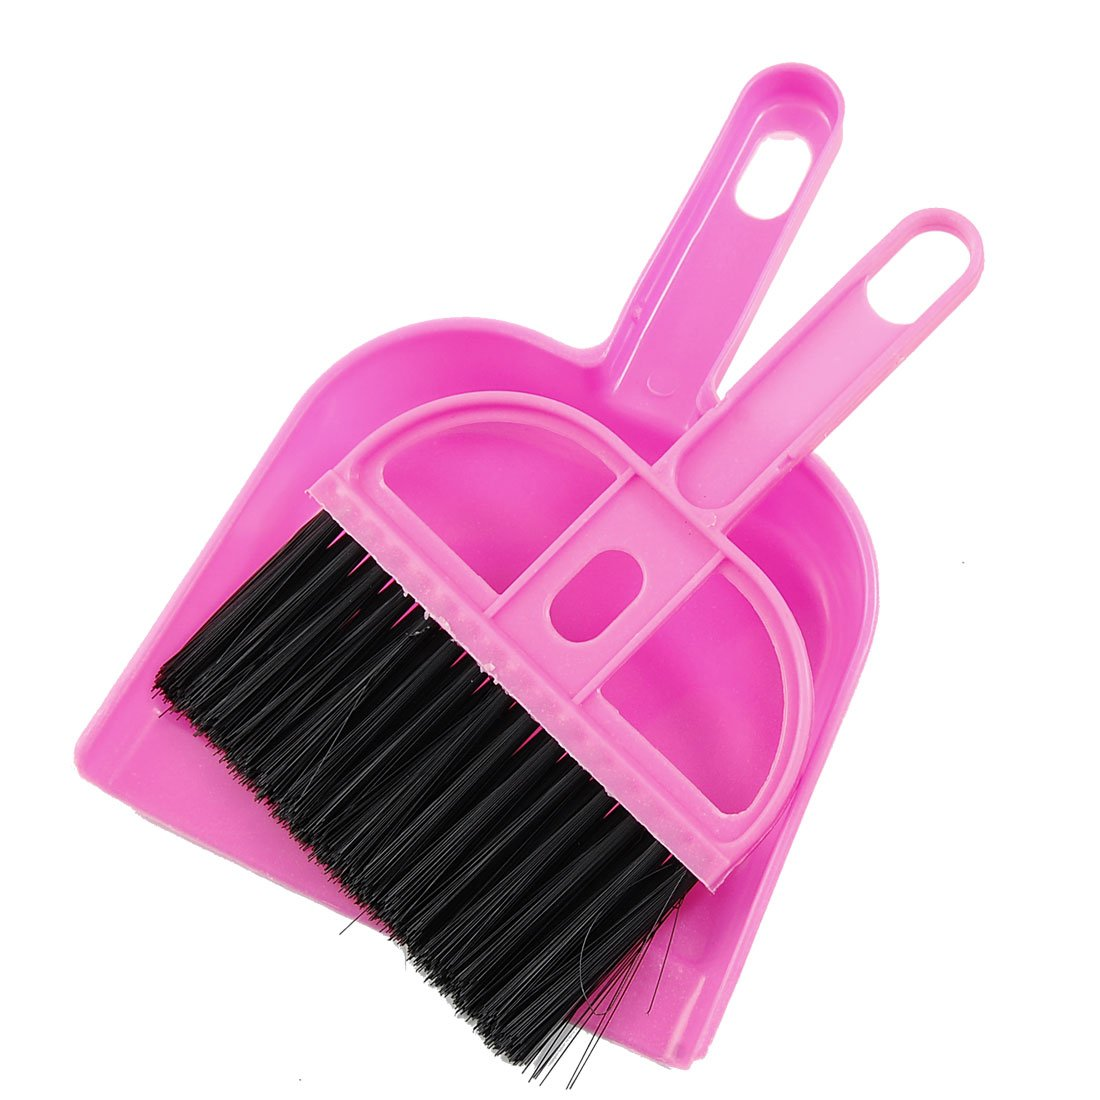 5 Pcs Wholesale Amico Office Home Car Cleaning Mini Whisk Broom Dustpan Set Pink Black(China (Mainland))